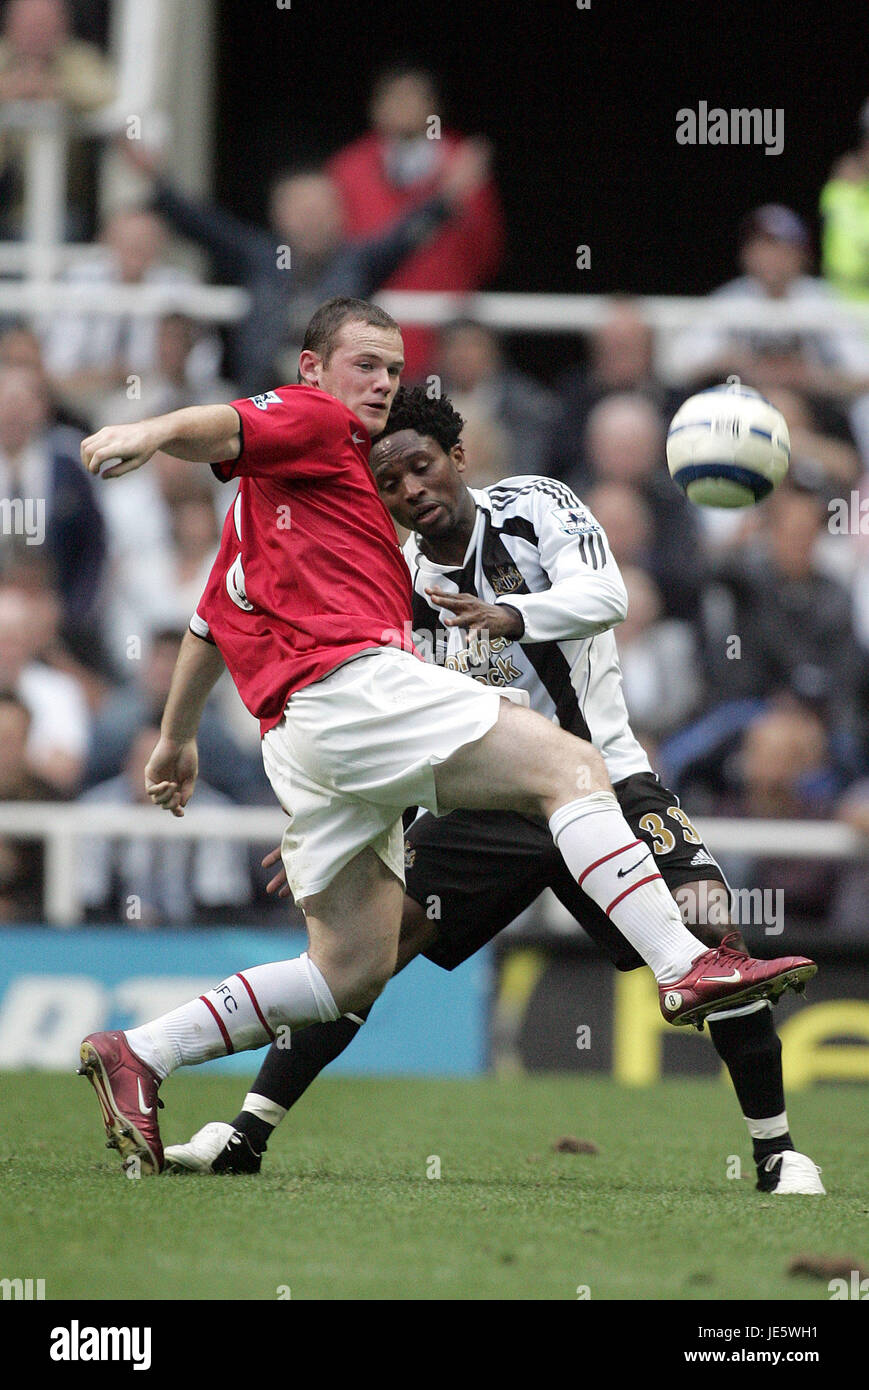 WAYNE ROONEY , CELESTINE BABAYARO, NEWCASTLE V MANCHESTER UNITED, NEWCASTLE V MANCHESTER UNITED, 2005 - Stock Image